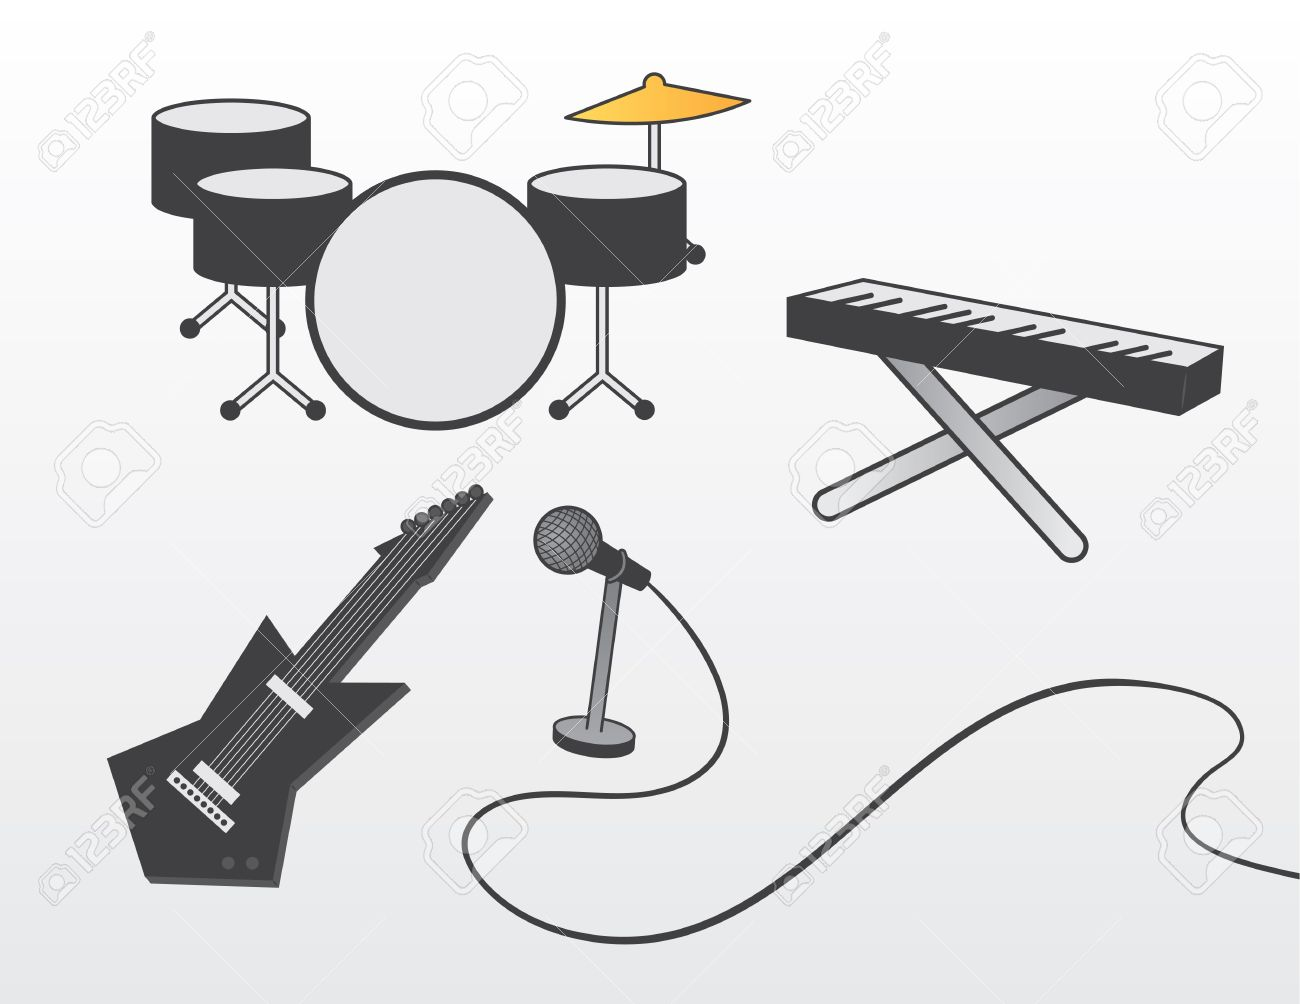 Various band instruments including guitar, drum set, piano and